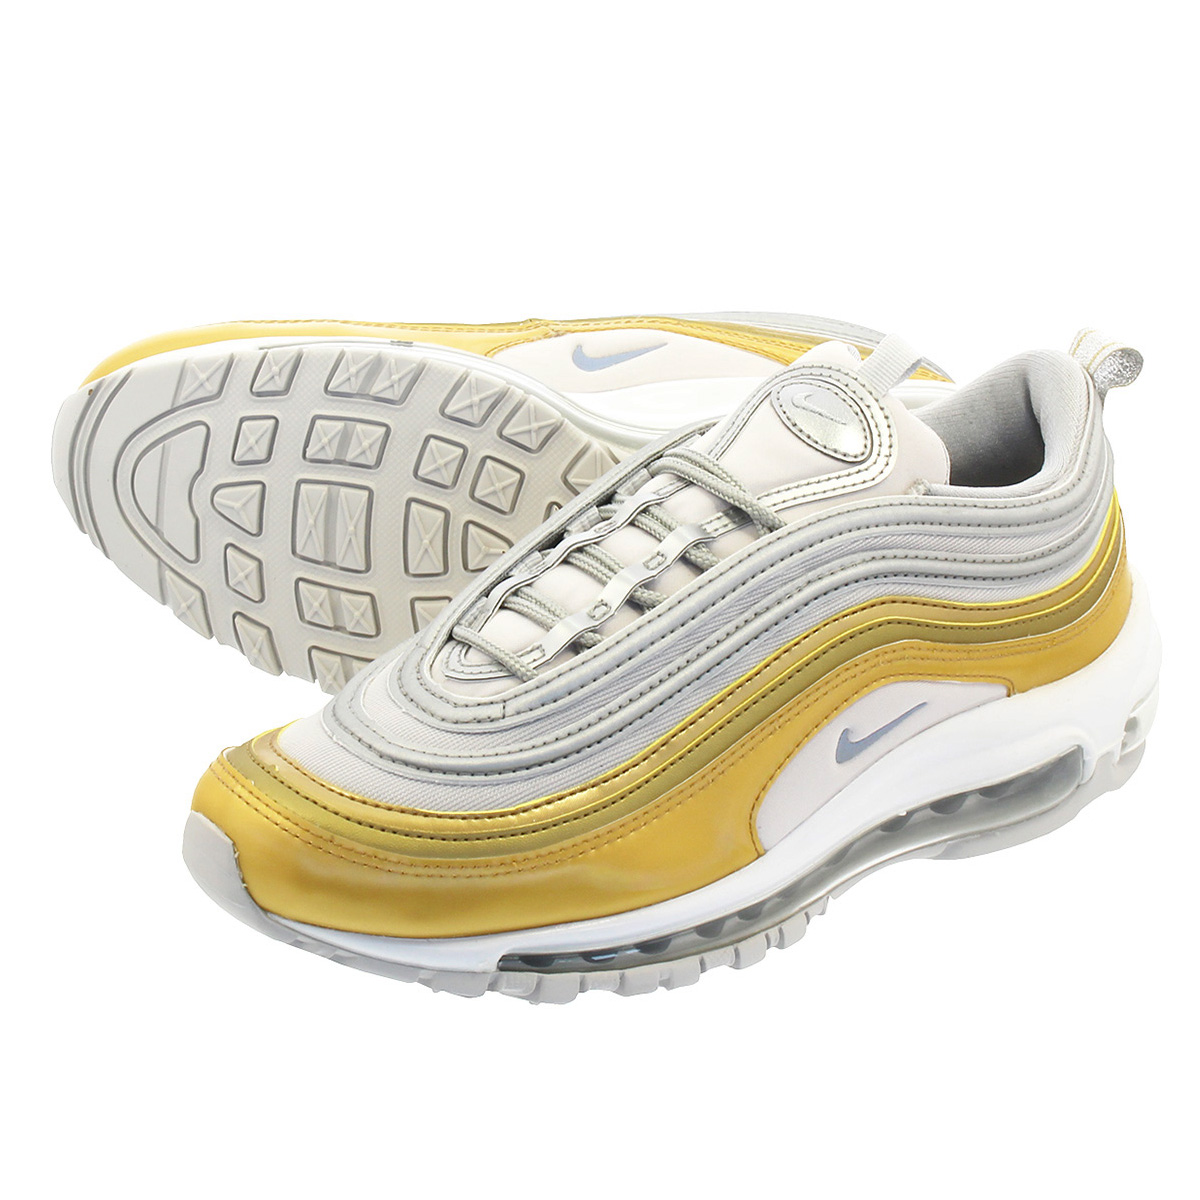 NIKE WMNS AIR MAX 97 SE ナイキ ウィメンズ エア マックス 97 SE VAST GREY/METALLIC SILVER/METALLIC GOLD aq4137-001